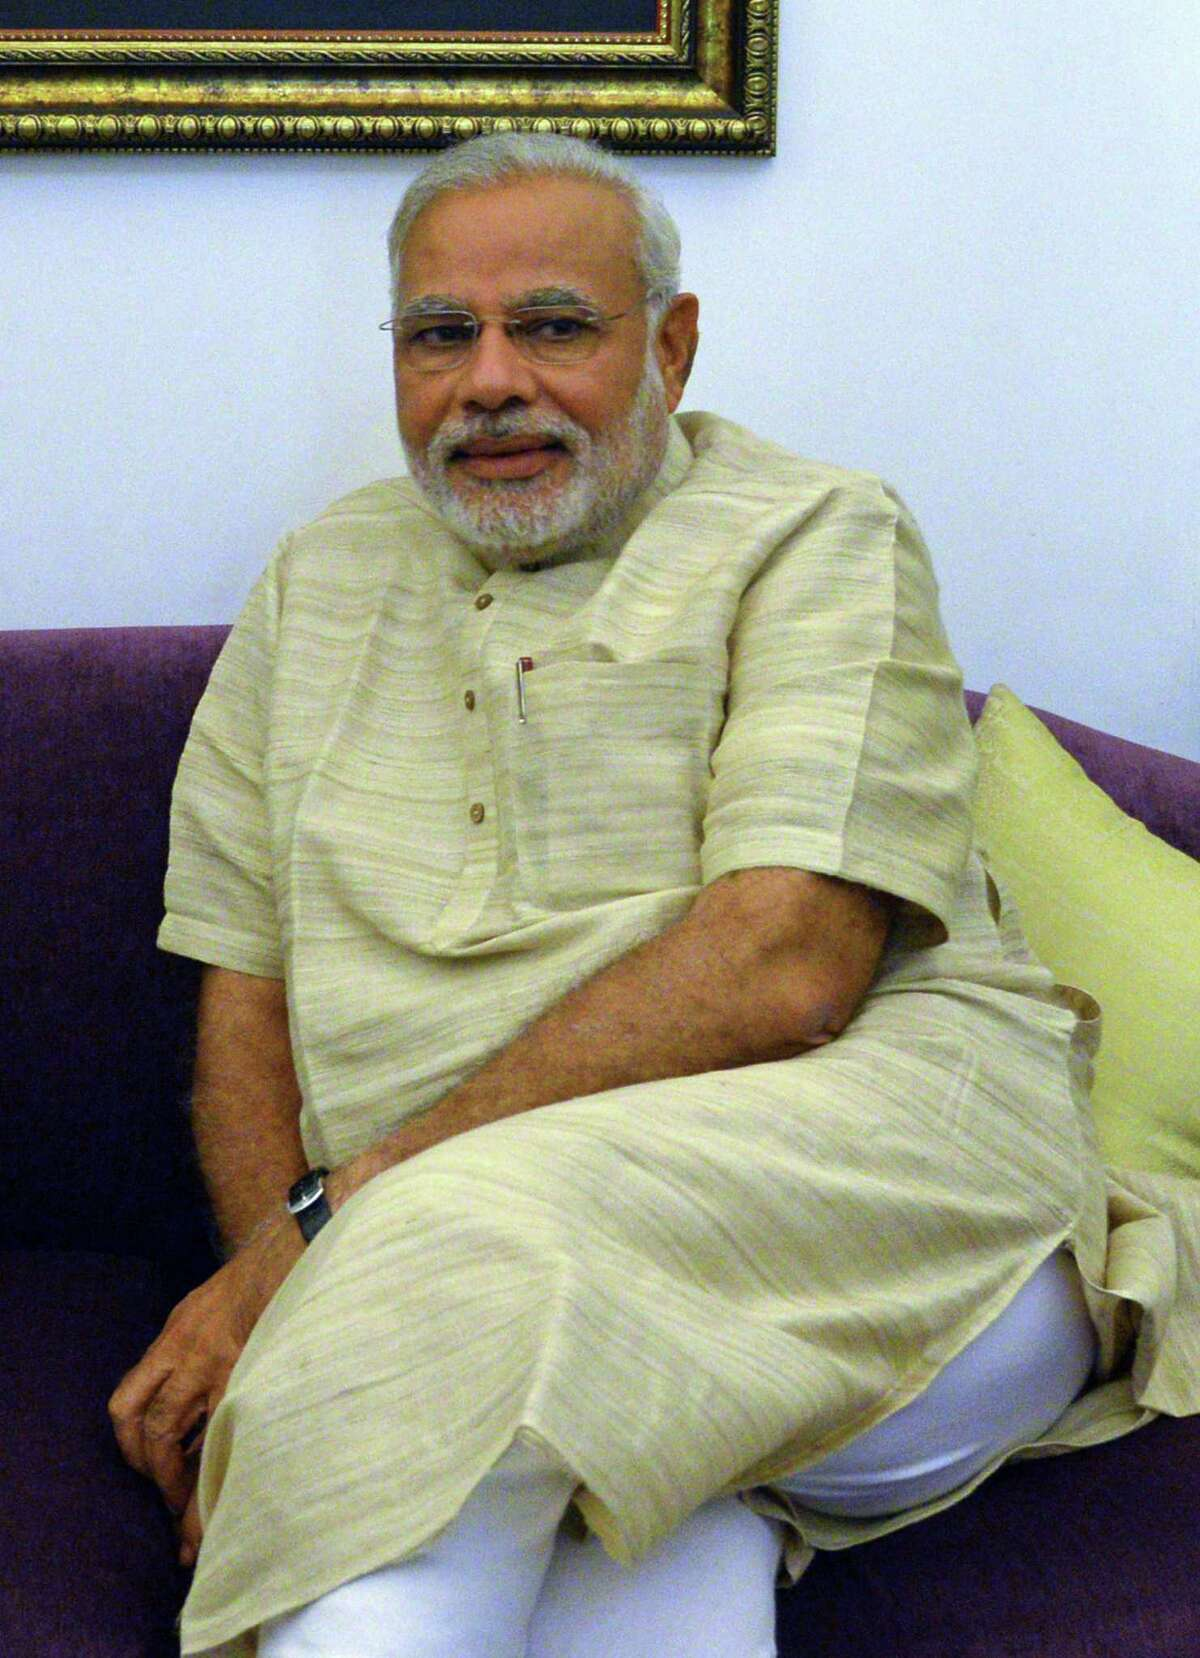 Newly elected Indian prime minister Narendra Modi has made headlines and started a fashion trend by wearing his unique take on a traditional Indian kurta, left. He also created a stir when he wore a more formal, long-sleeve, button-cuffed version at his swearing-in ceremony.